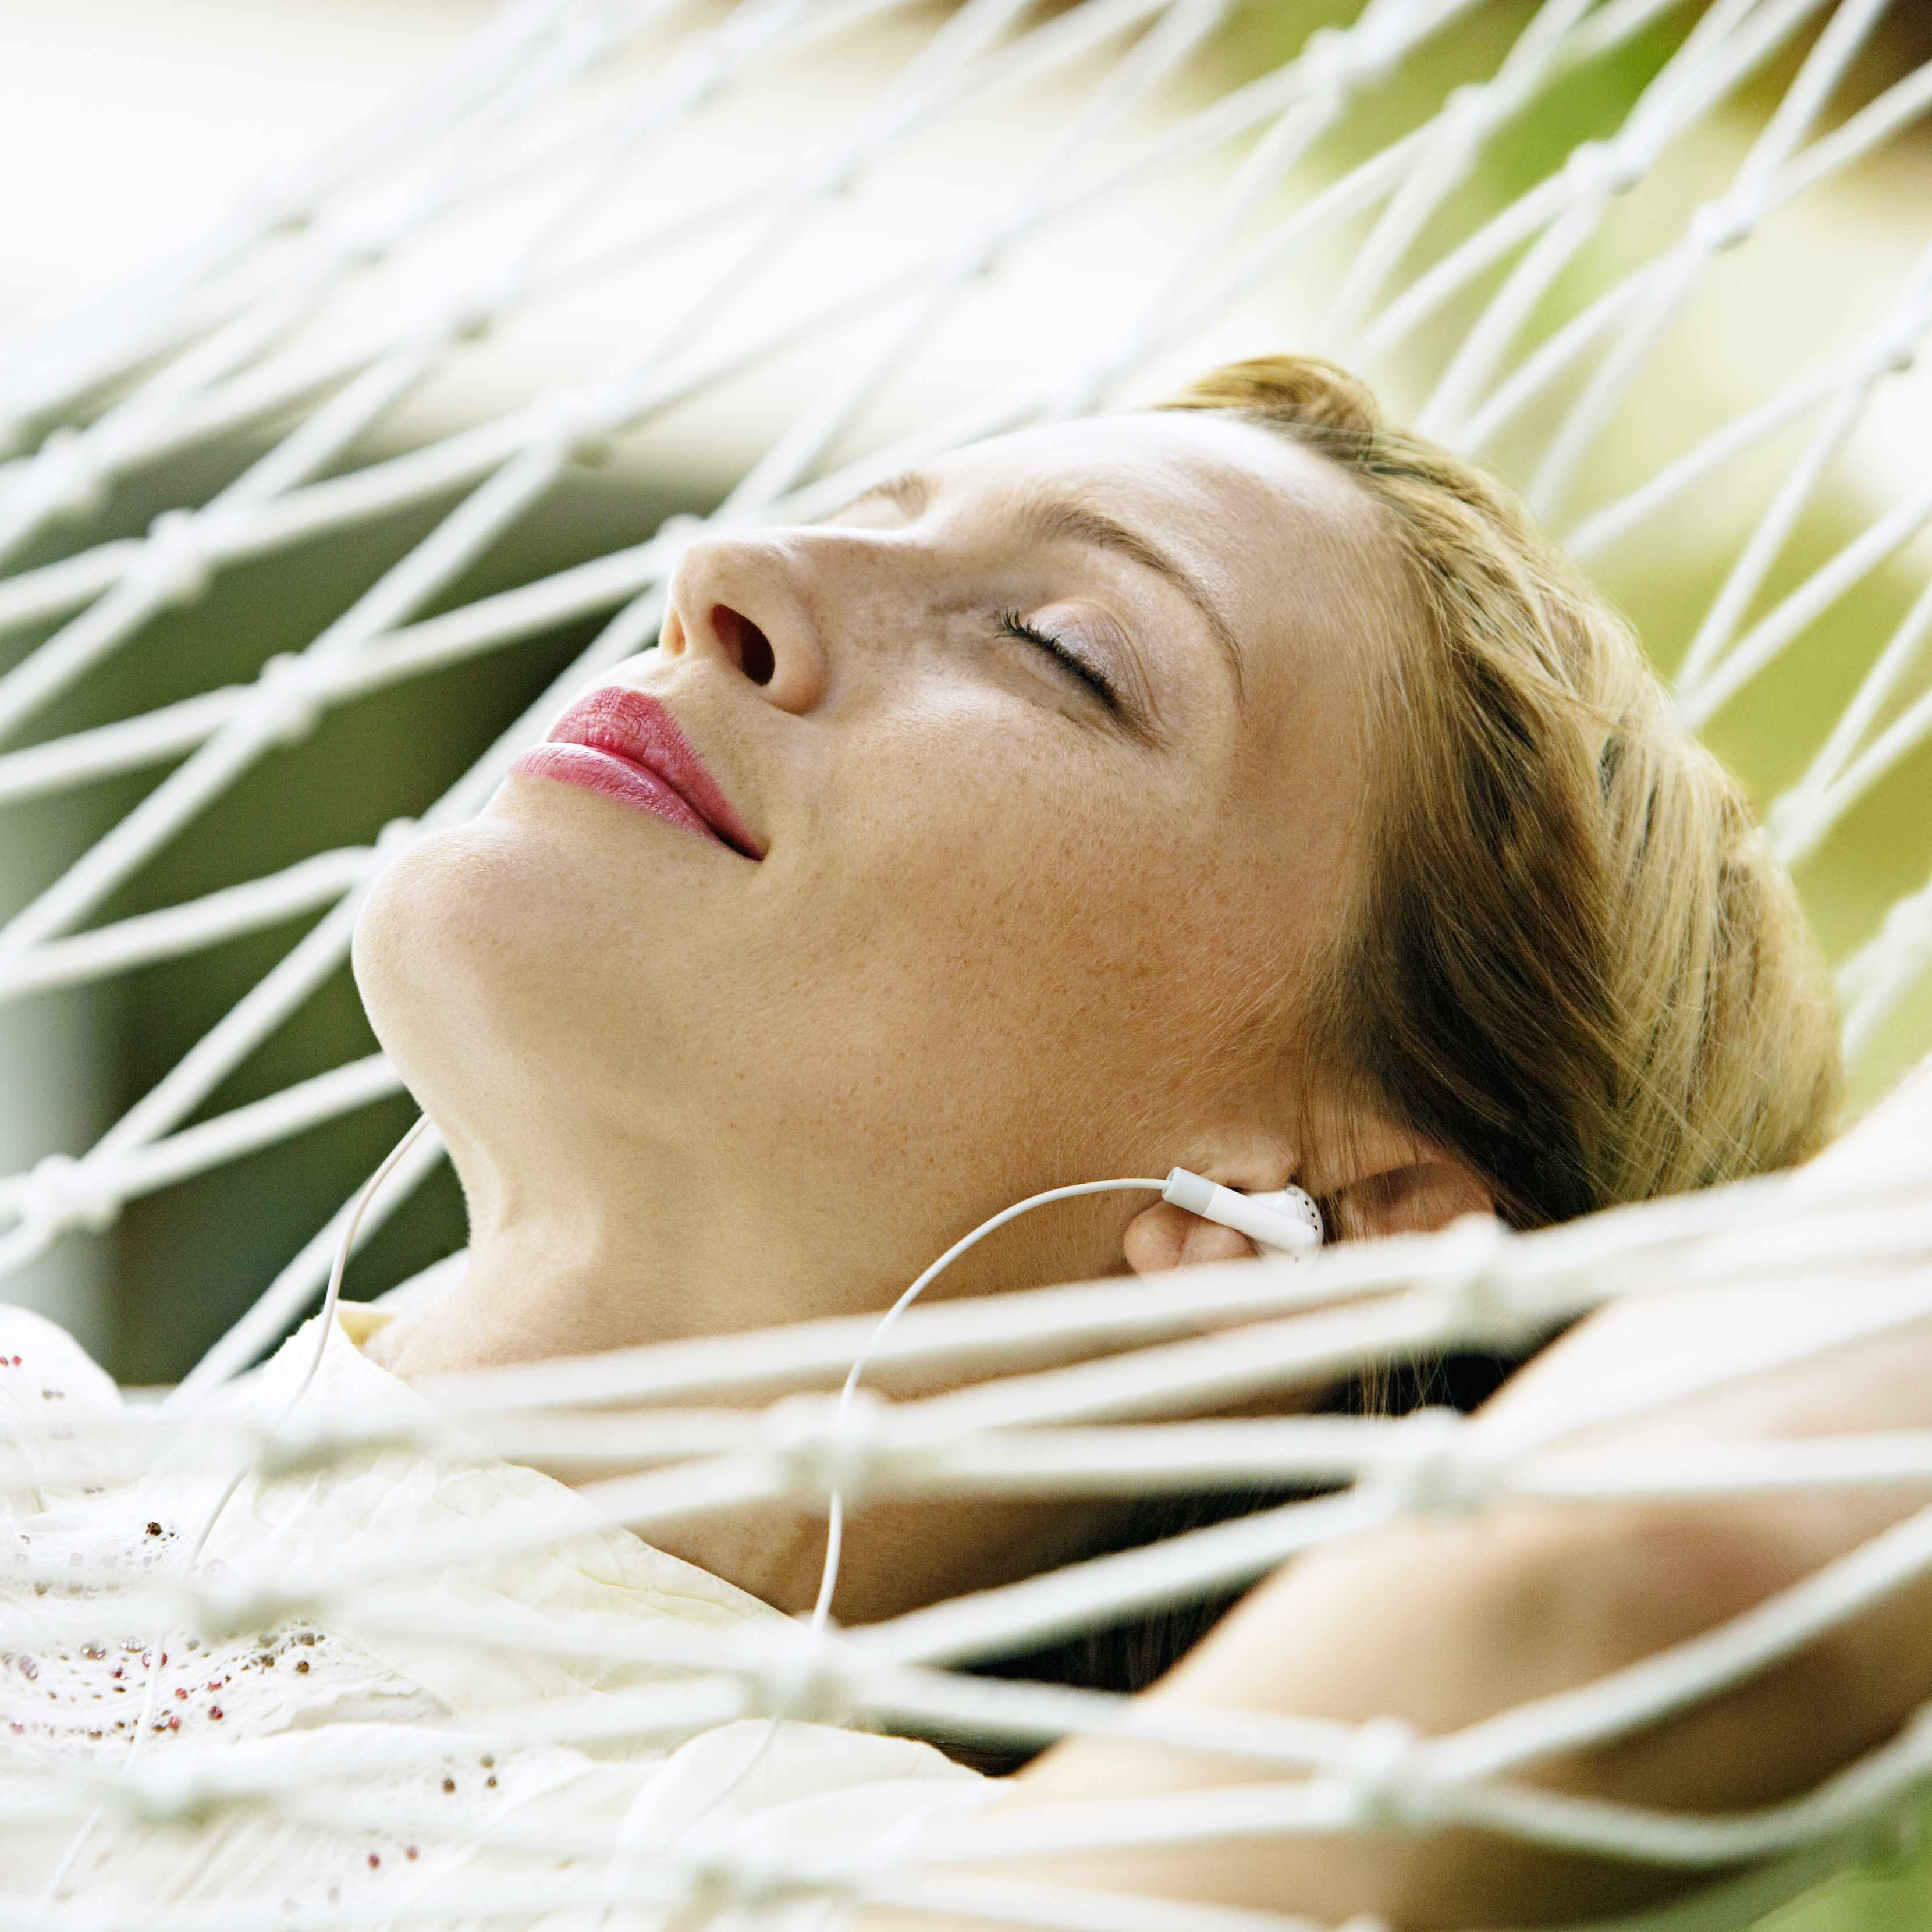 a close-up of a woman relaxing in a hammock, eyes closed, smiling, with earbuds in her ears